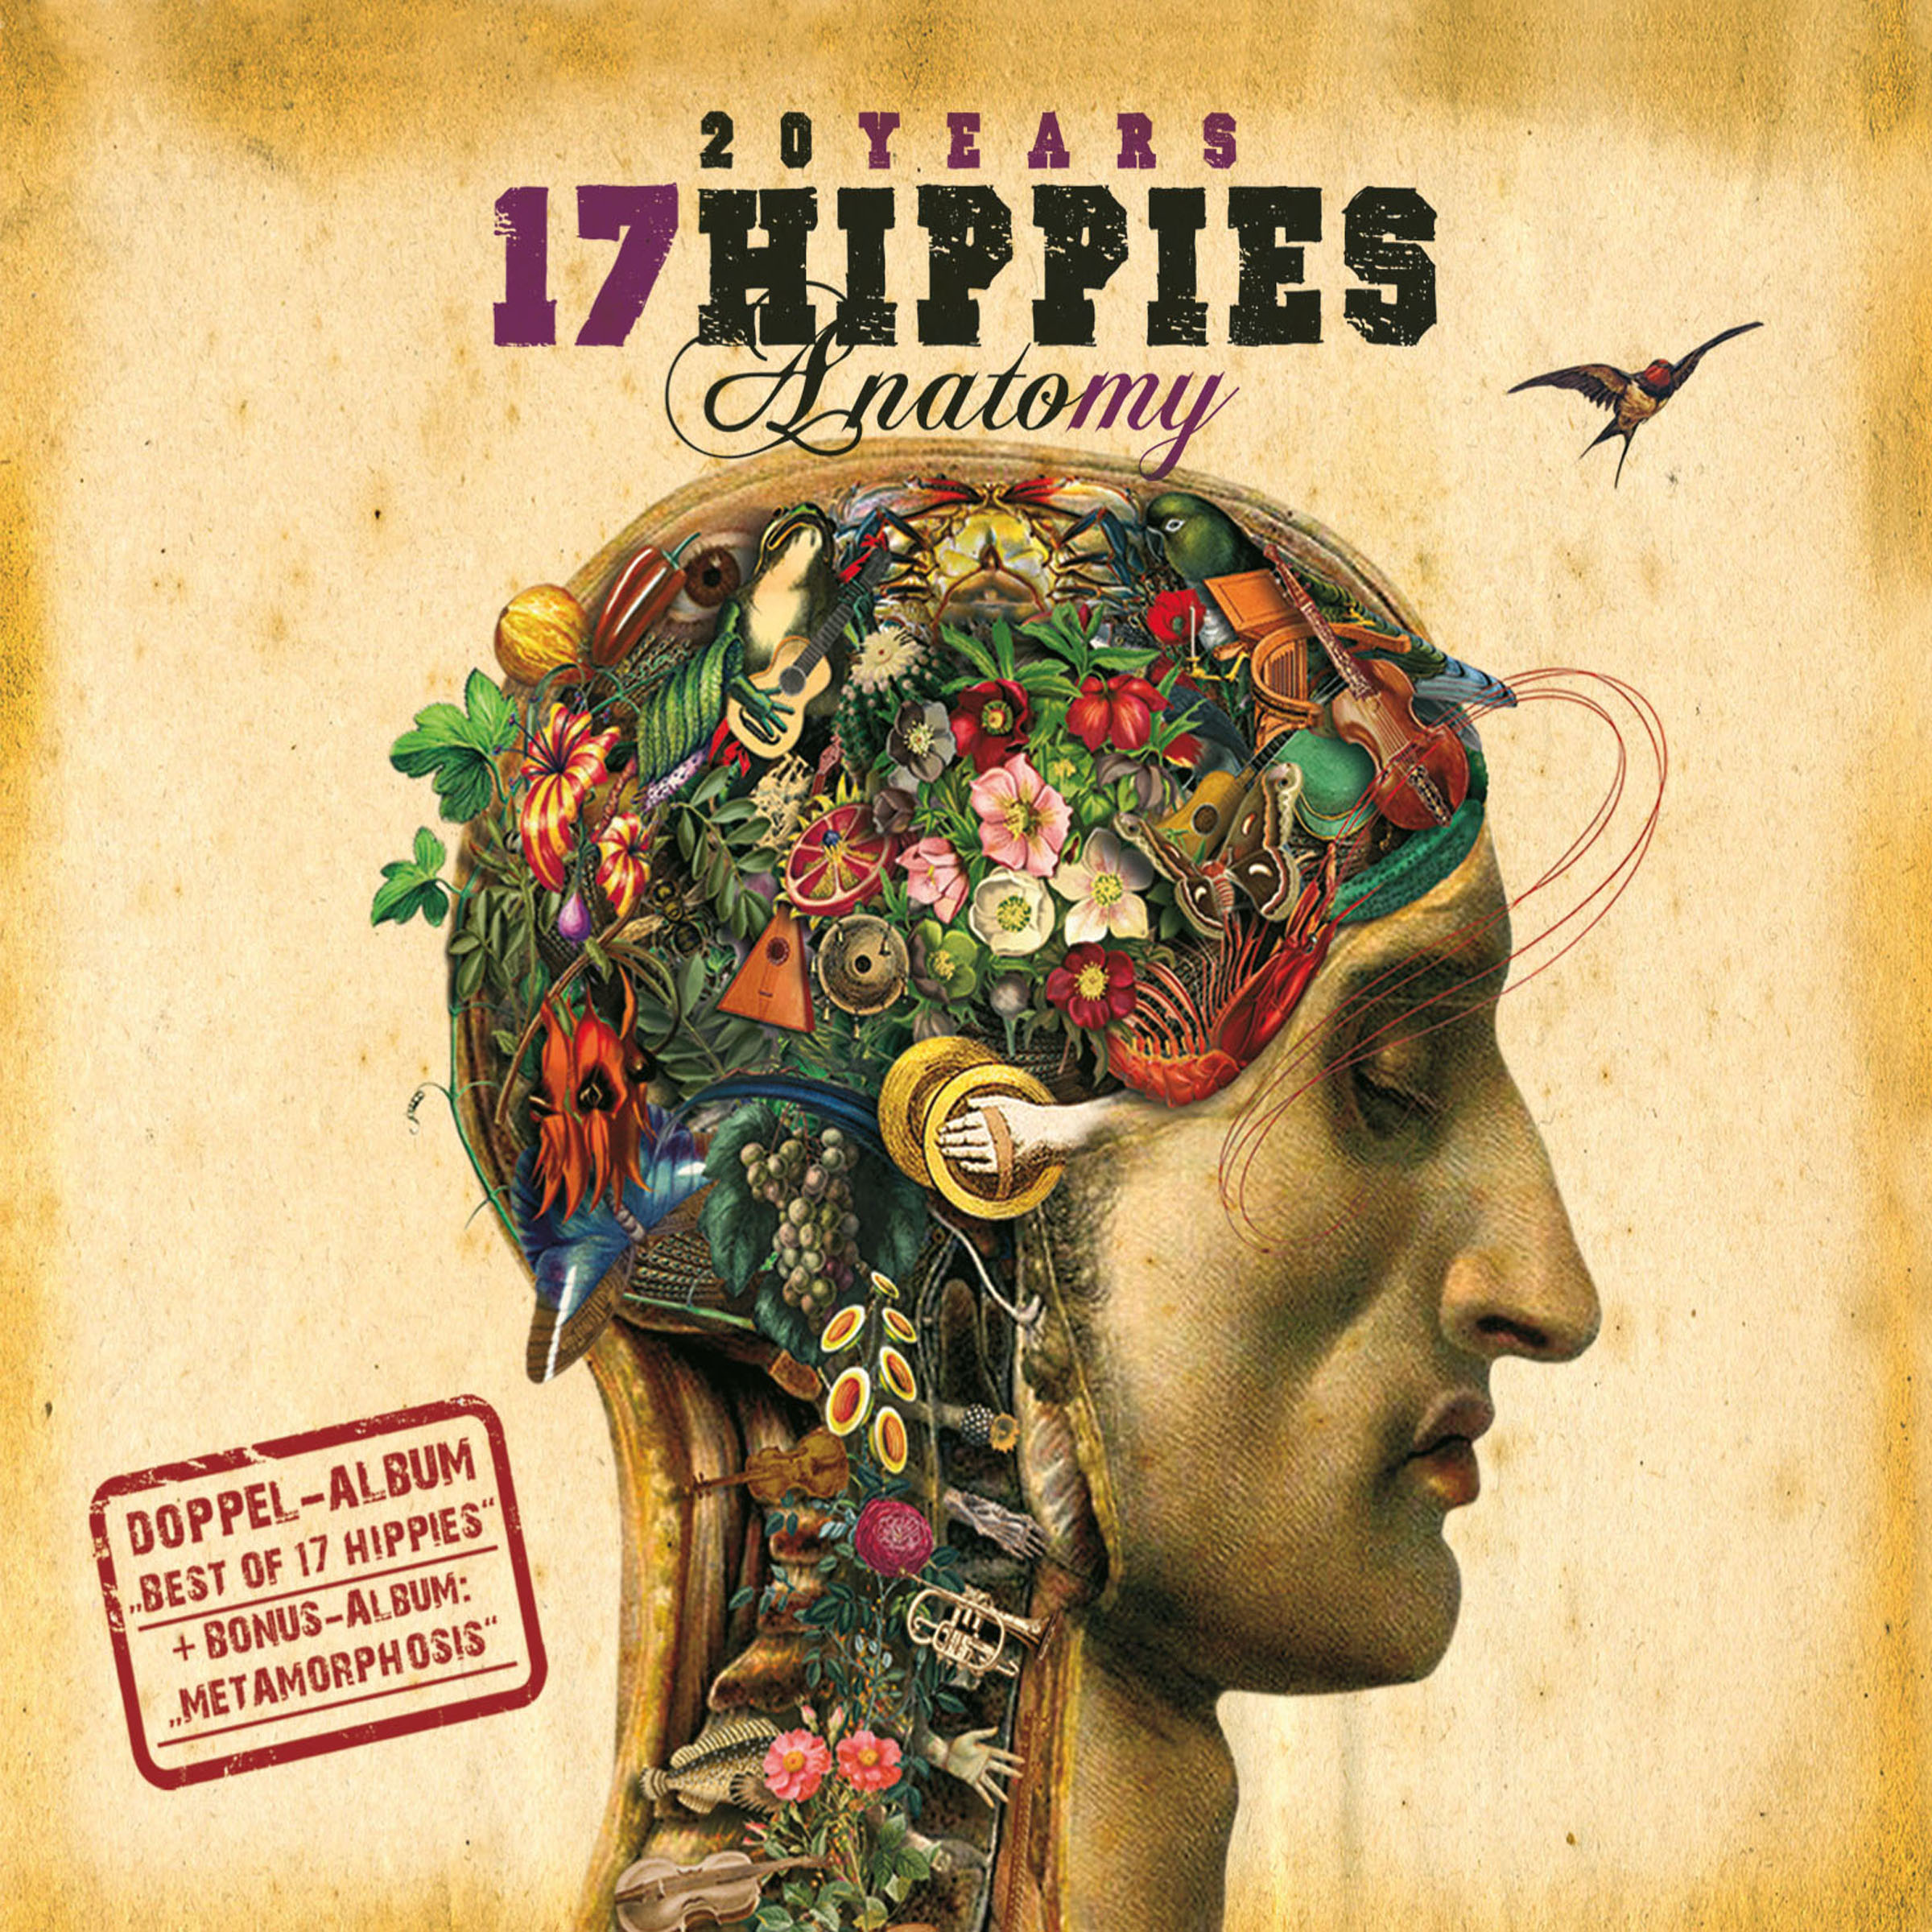 17 Hippies – Anatomy